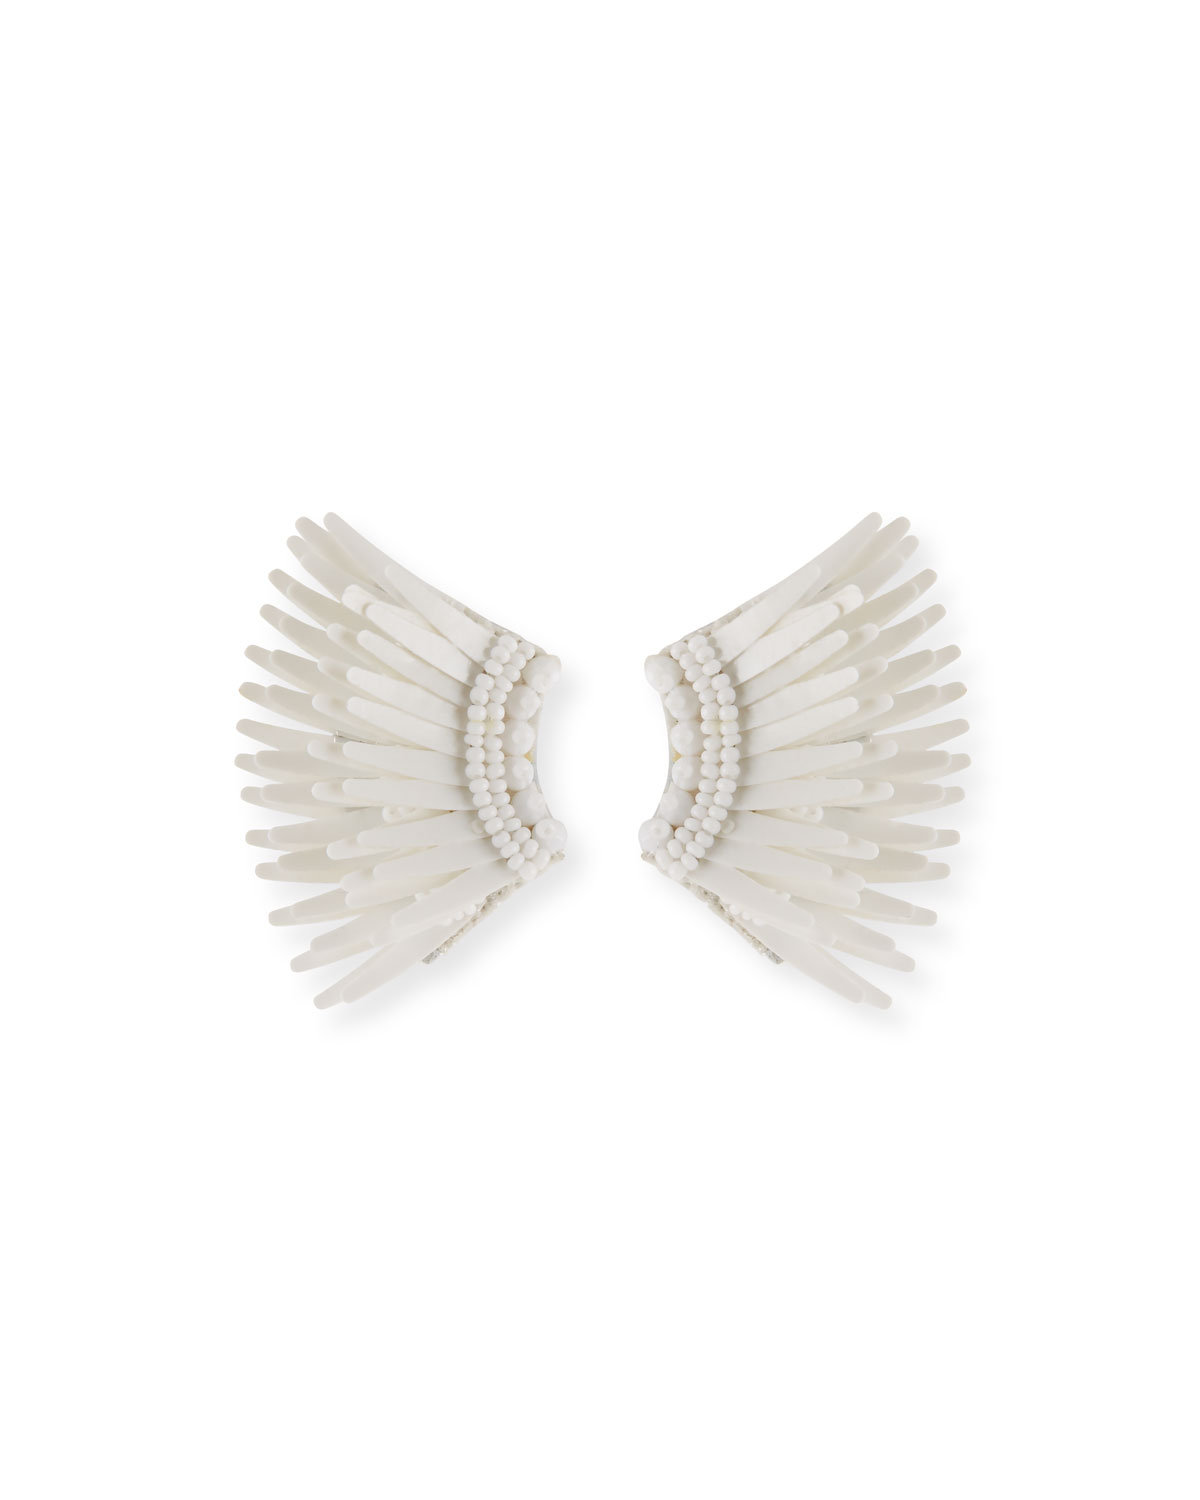 Mignonne Gavigan Madeline Mini Matte Earrings, White, WHITE